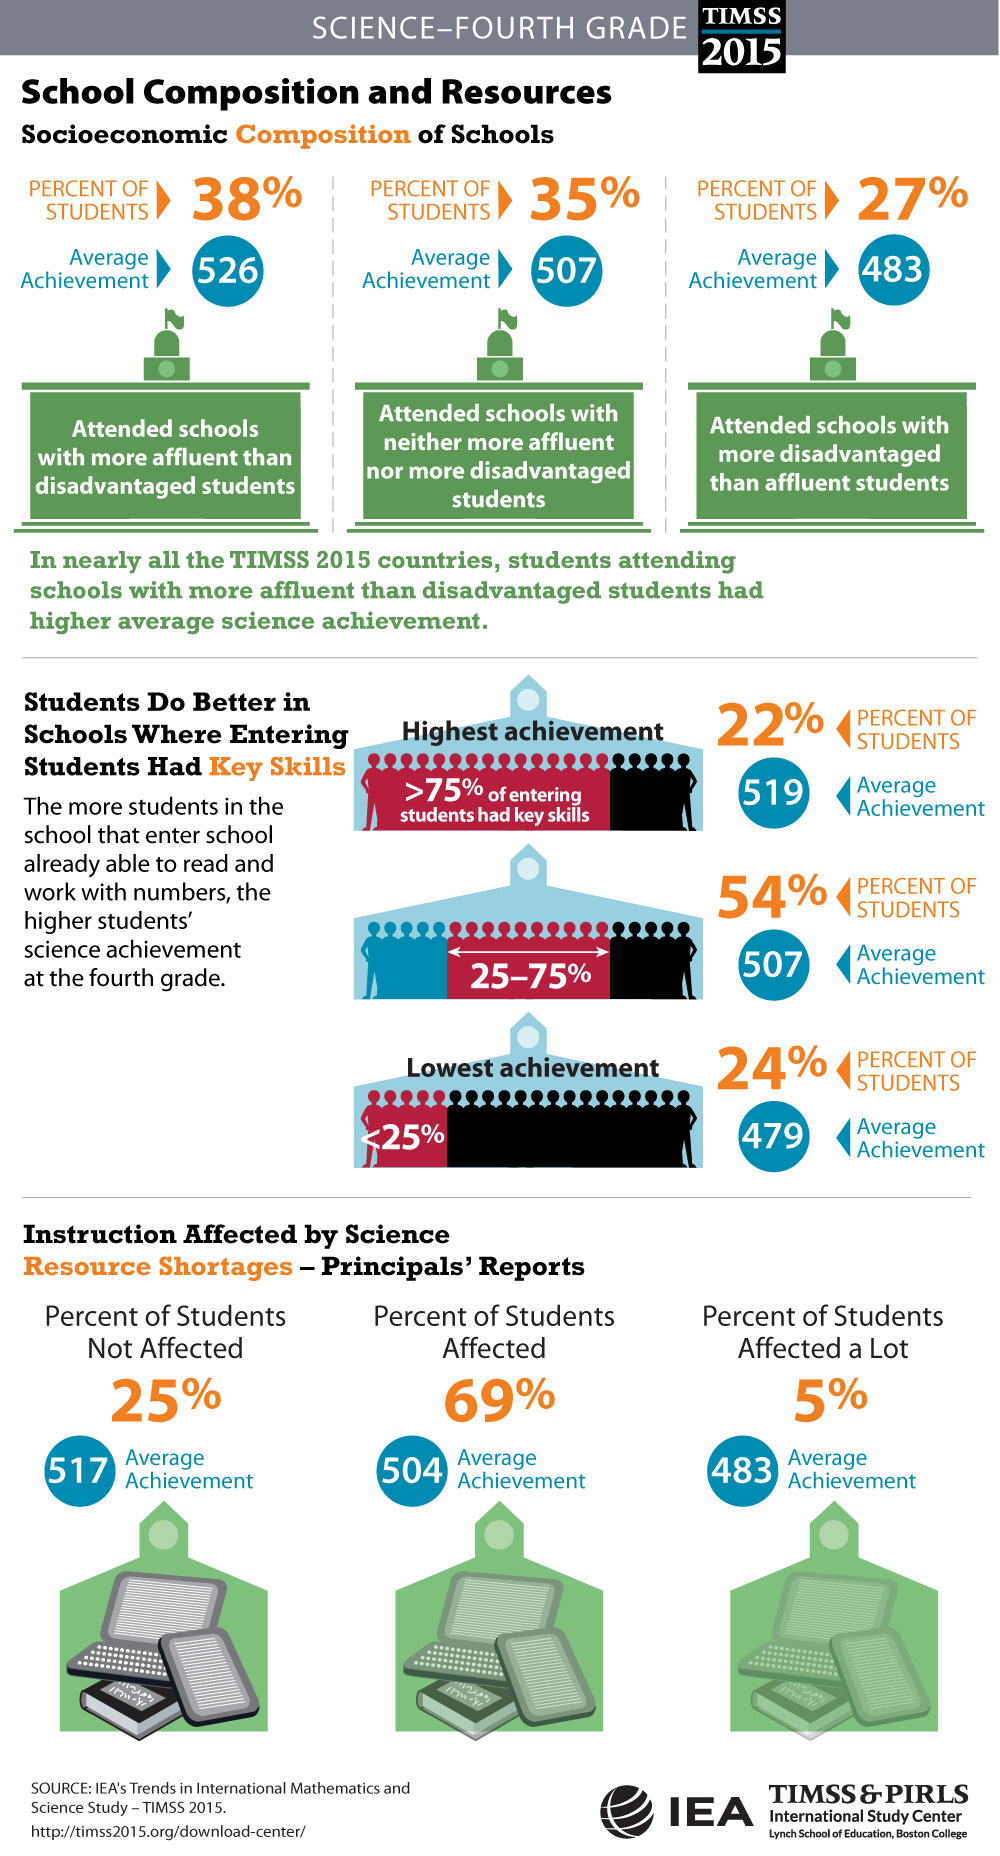 School Composition and Resources (G4) Infographic